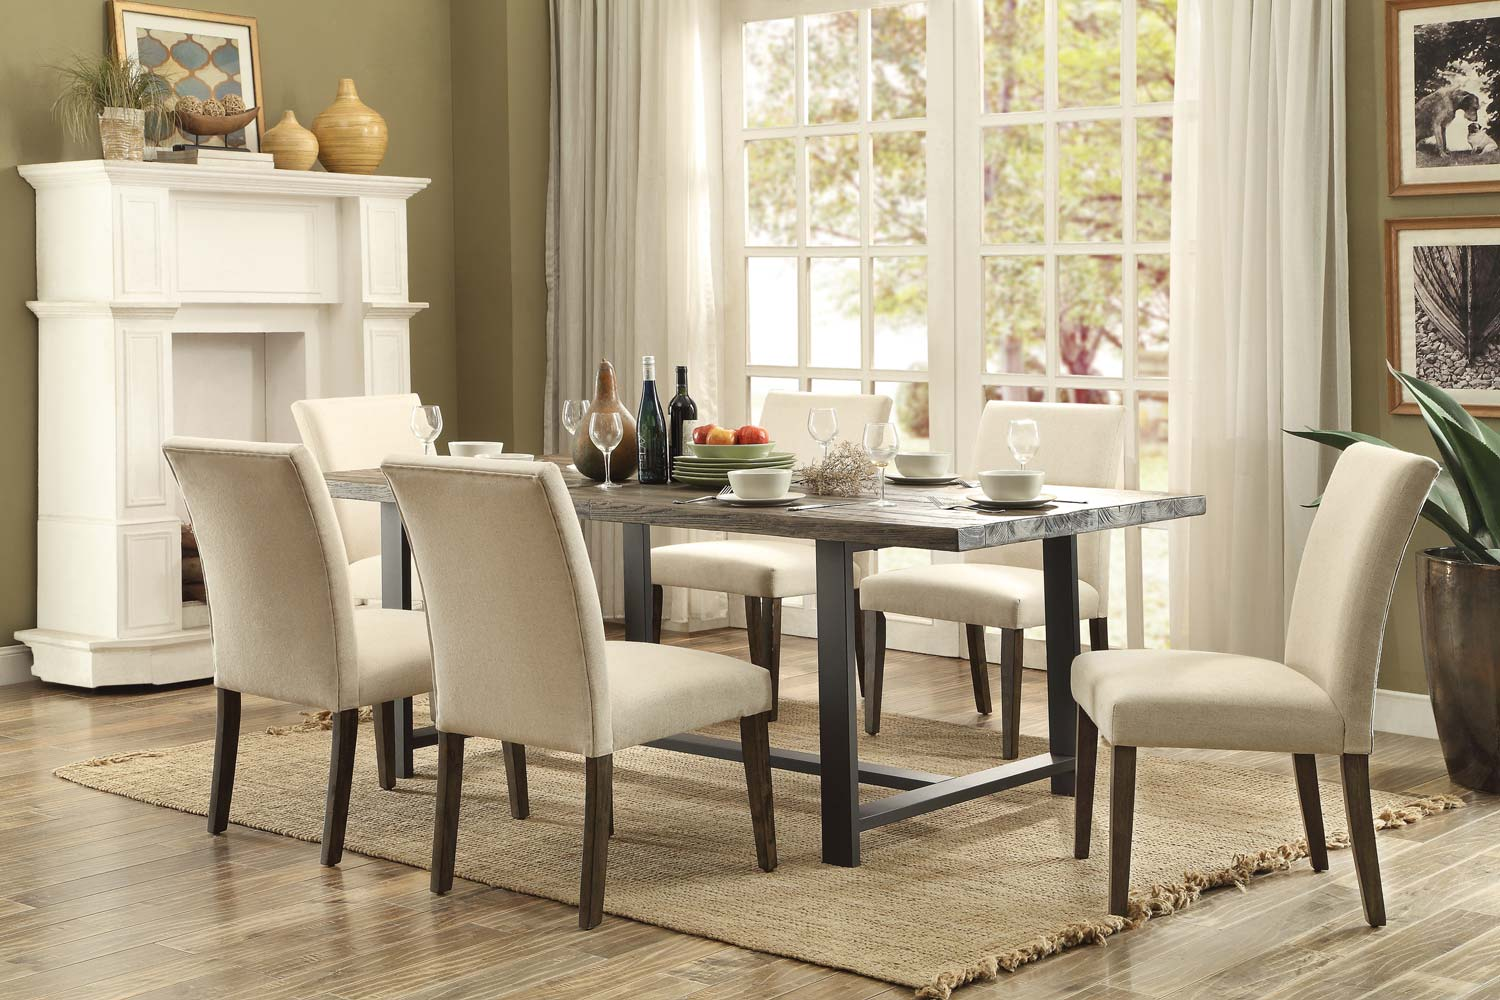 Homelegance Anacortes Dining Set - Burnished Natural